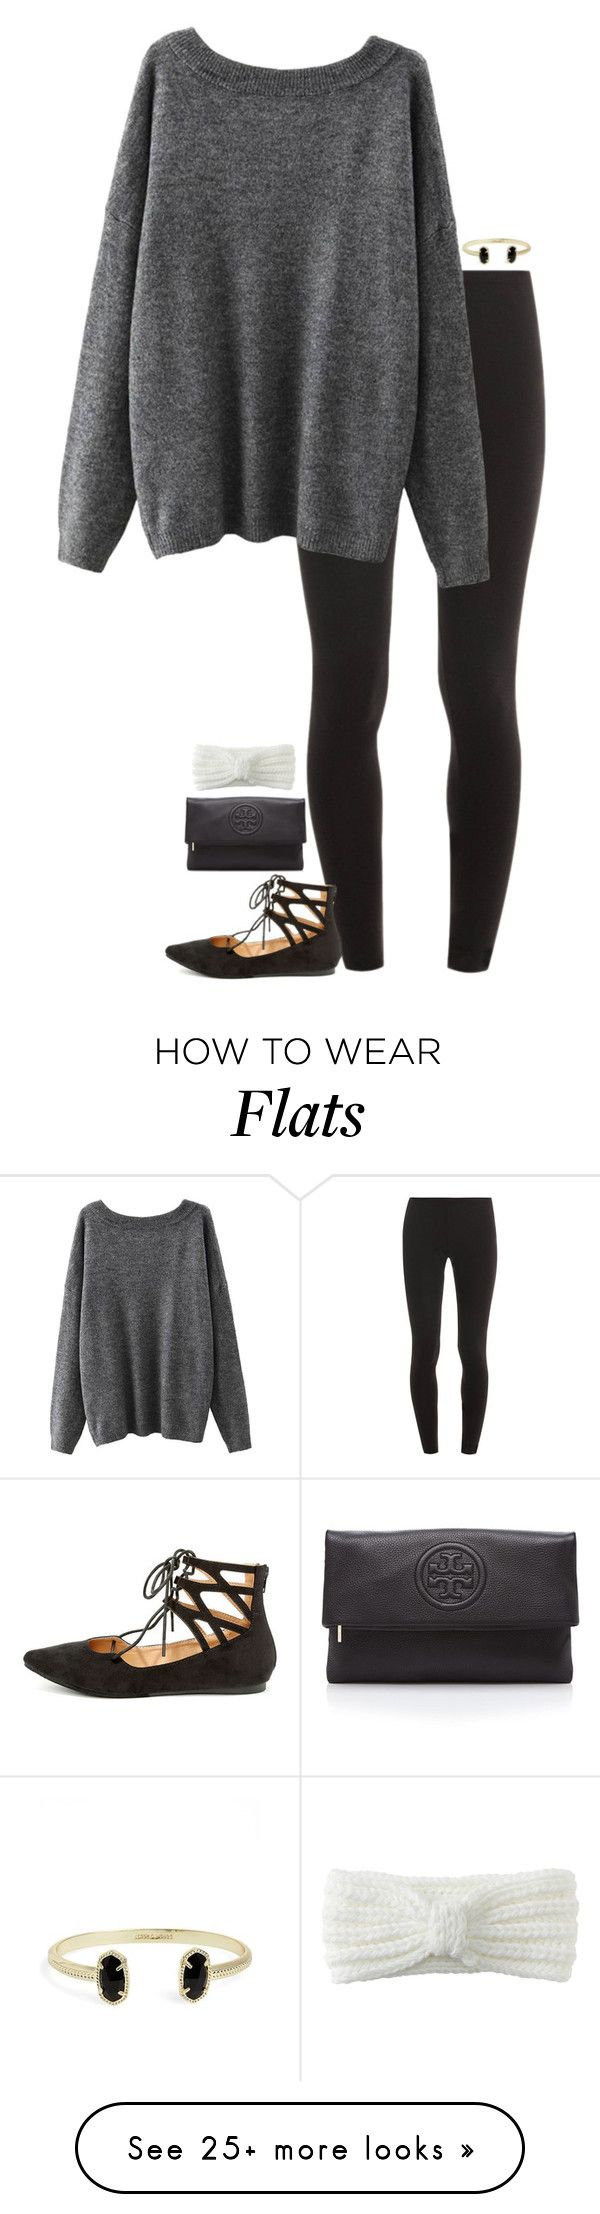 """winter outfit ❄️"" by sassy-and-southern on Polyvore featuring Splendid, Kendra Scott, Liliana, Tory Burch, Aéropostale and sassysouthernwinter"